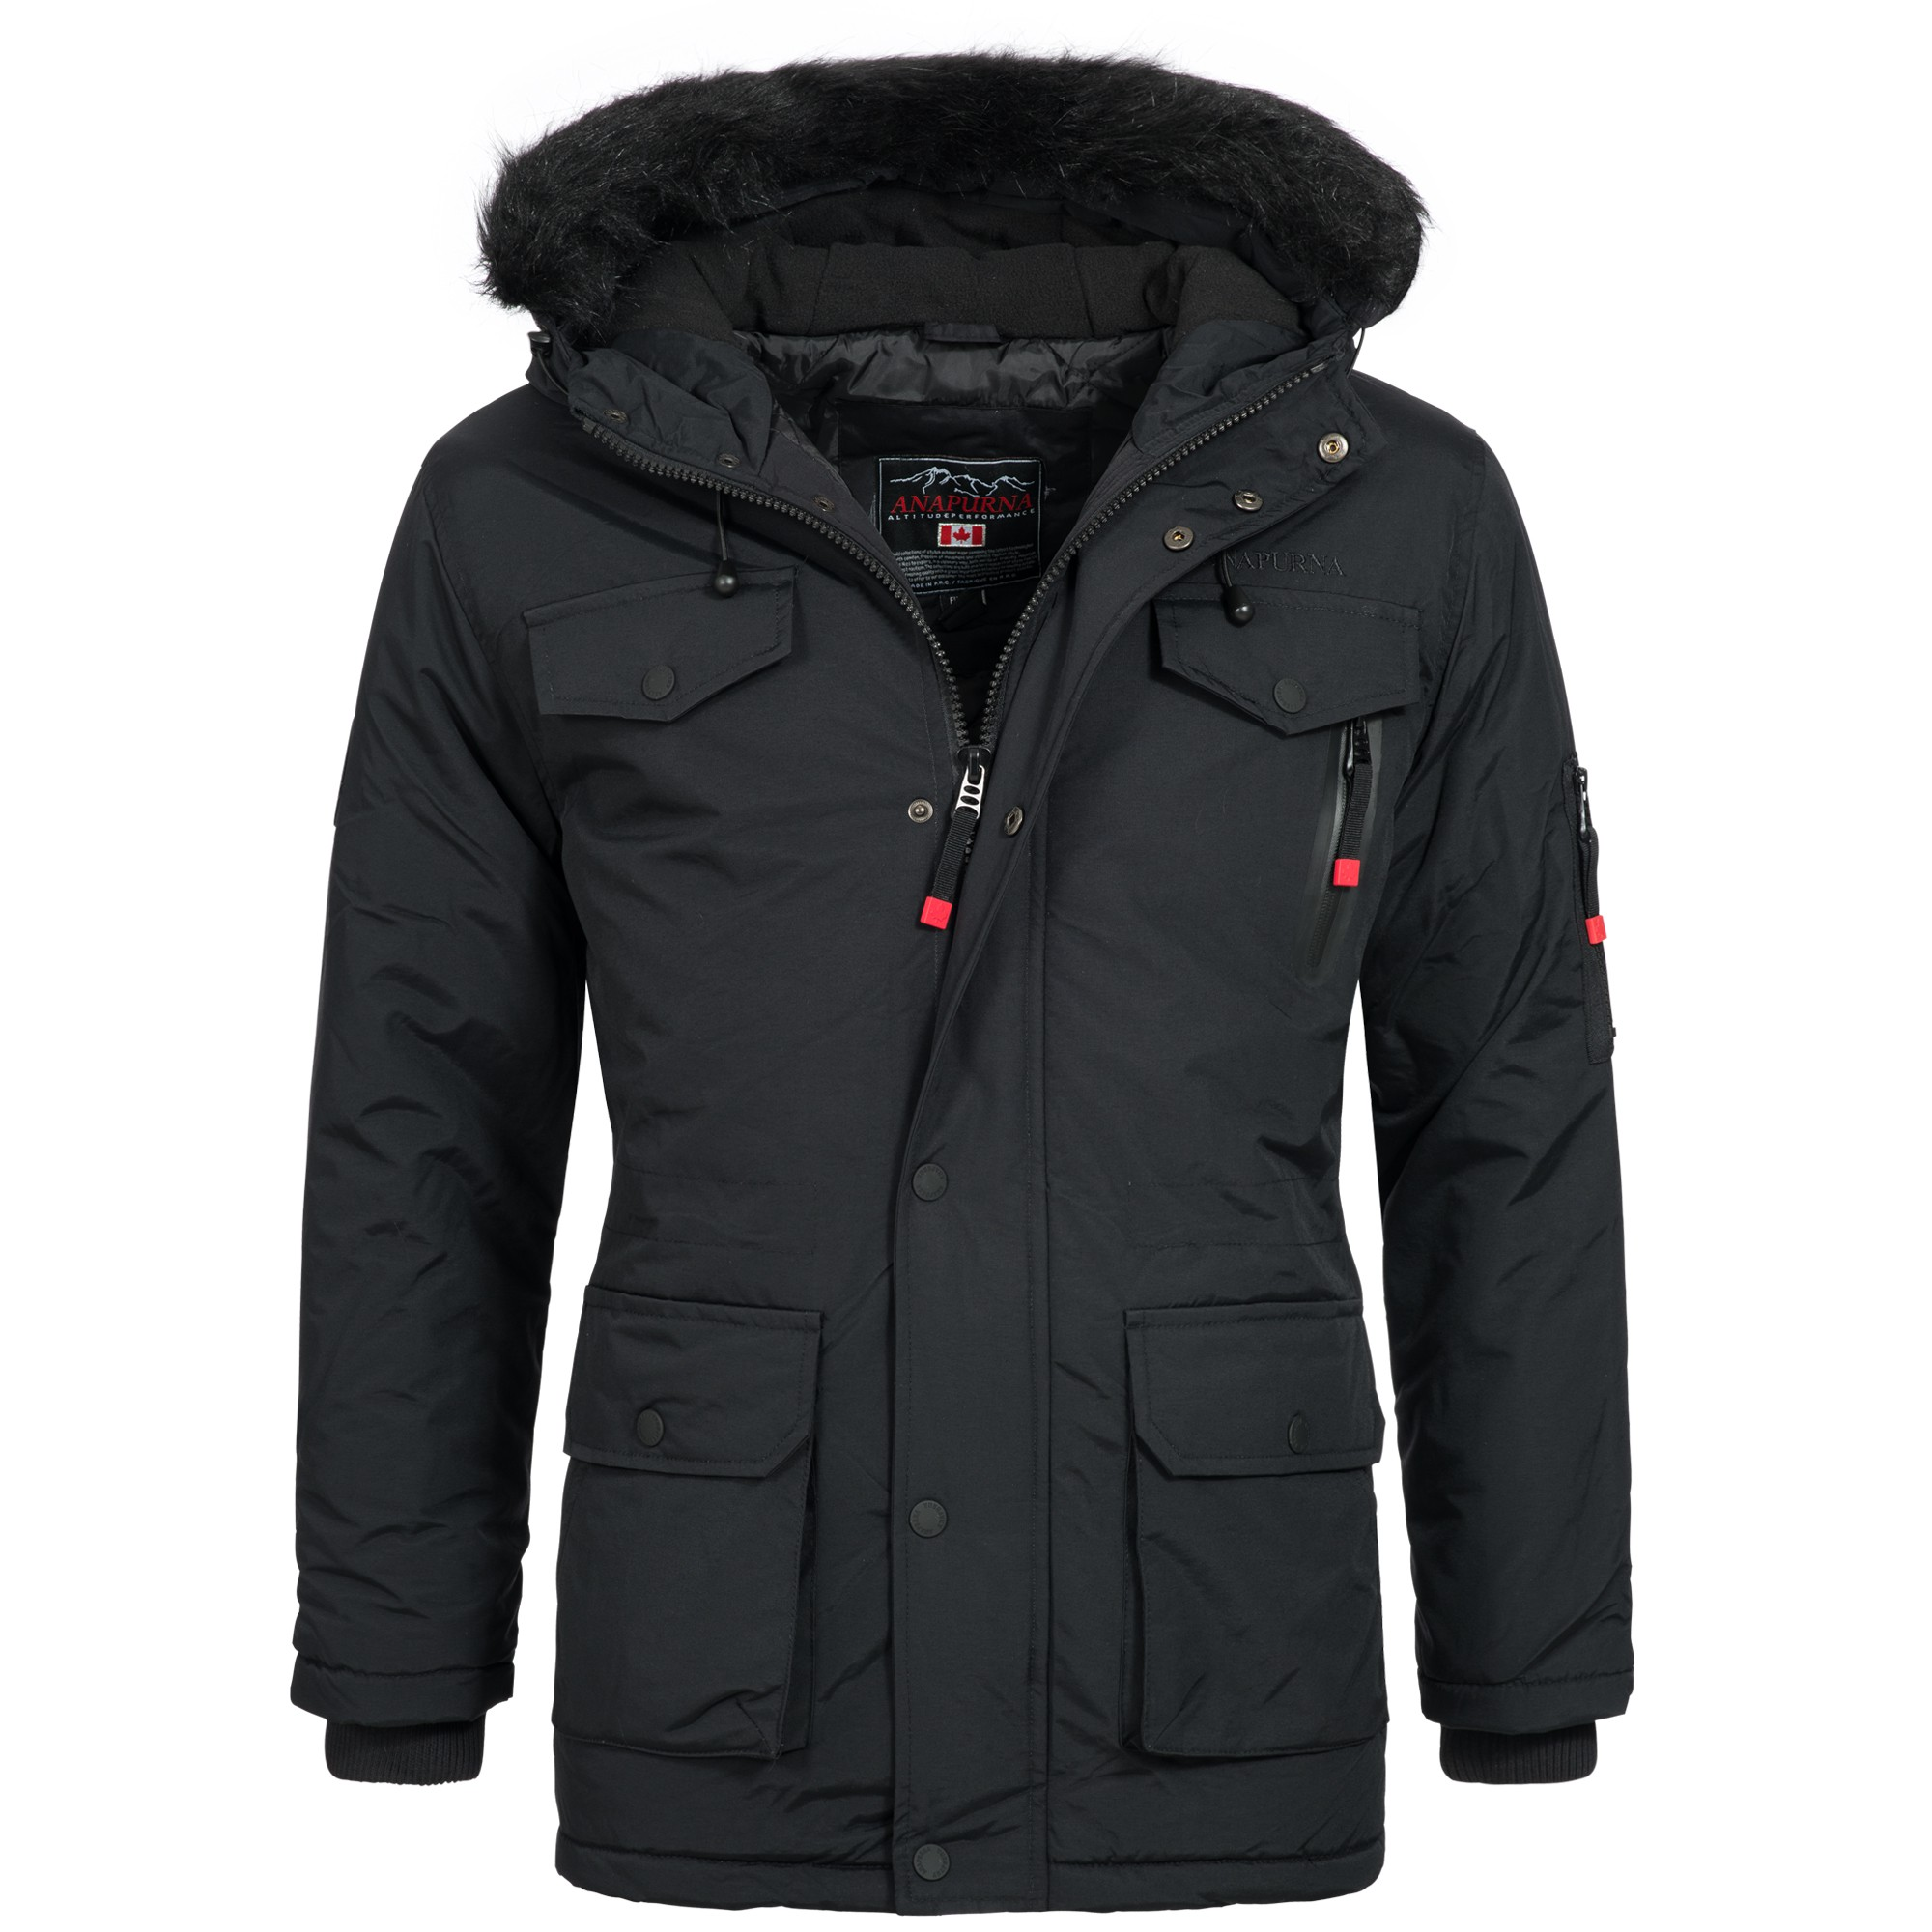 geographical norway alos herren winterjacke jacke parka mantel warm gef ttert gr s xxxl herren. Black Bedroom Furniture Sets. Home Design Ideas